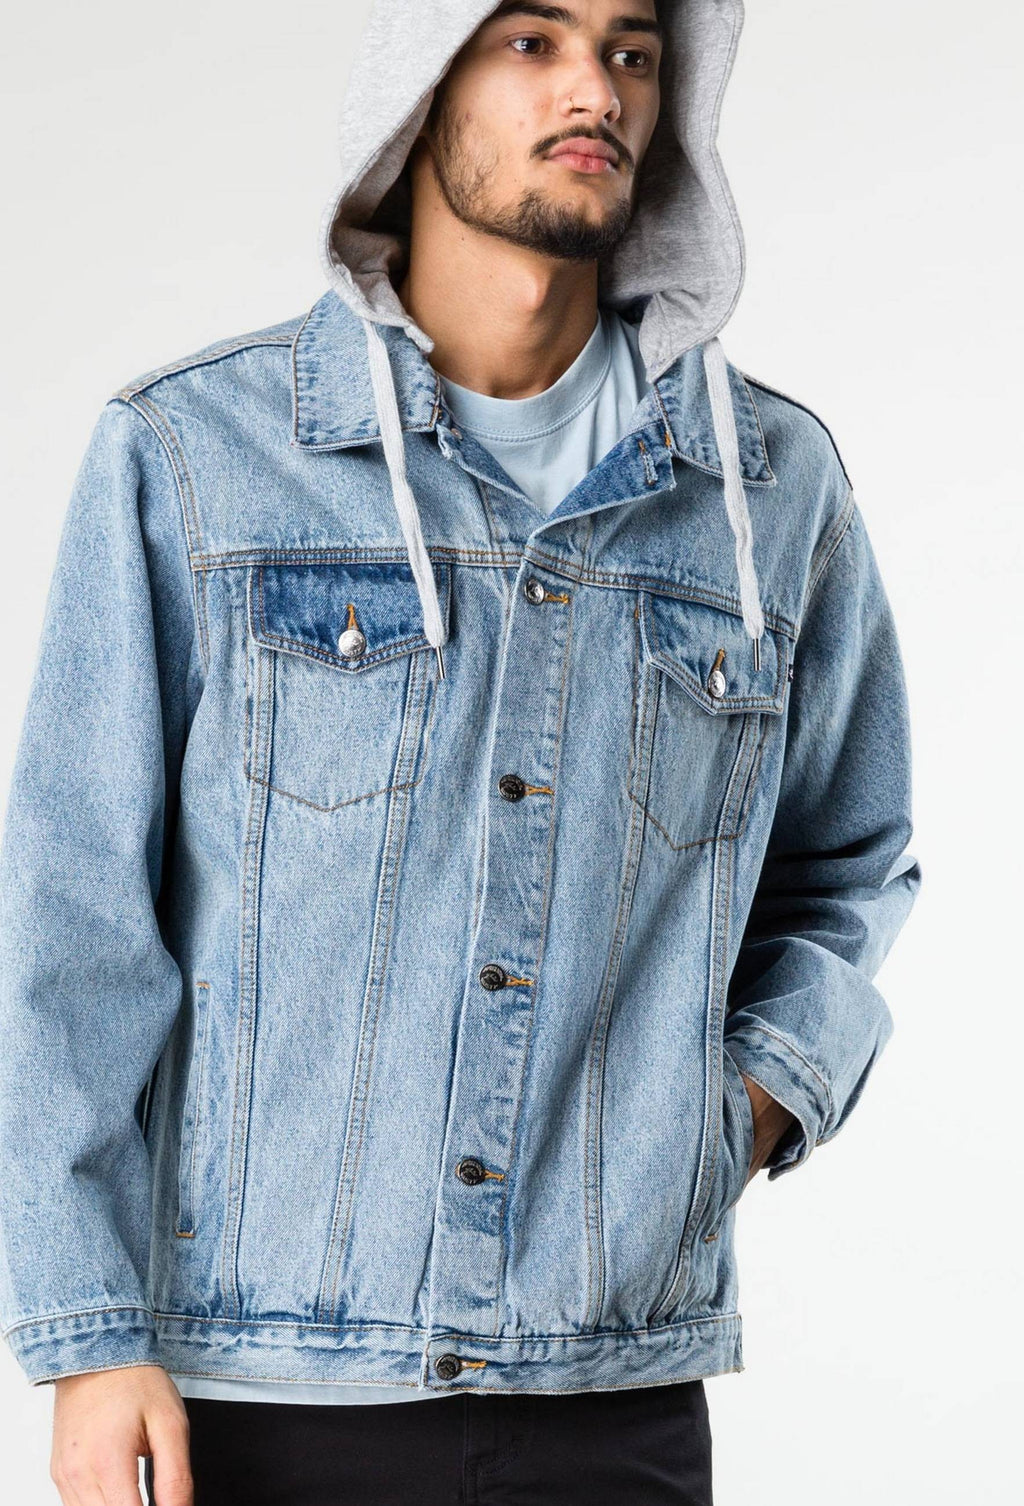 Throne Hooded Trucker Denim Jacket